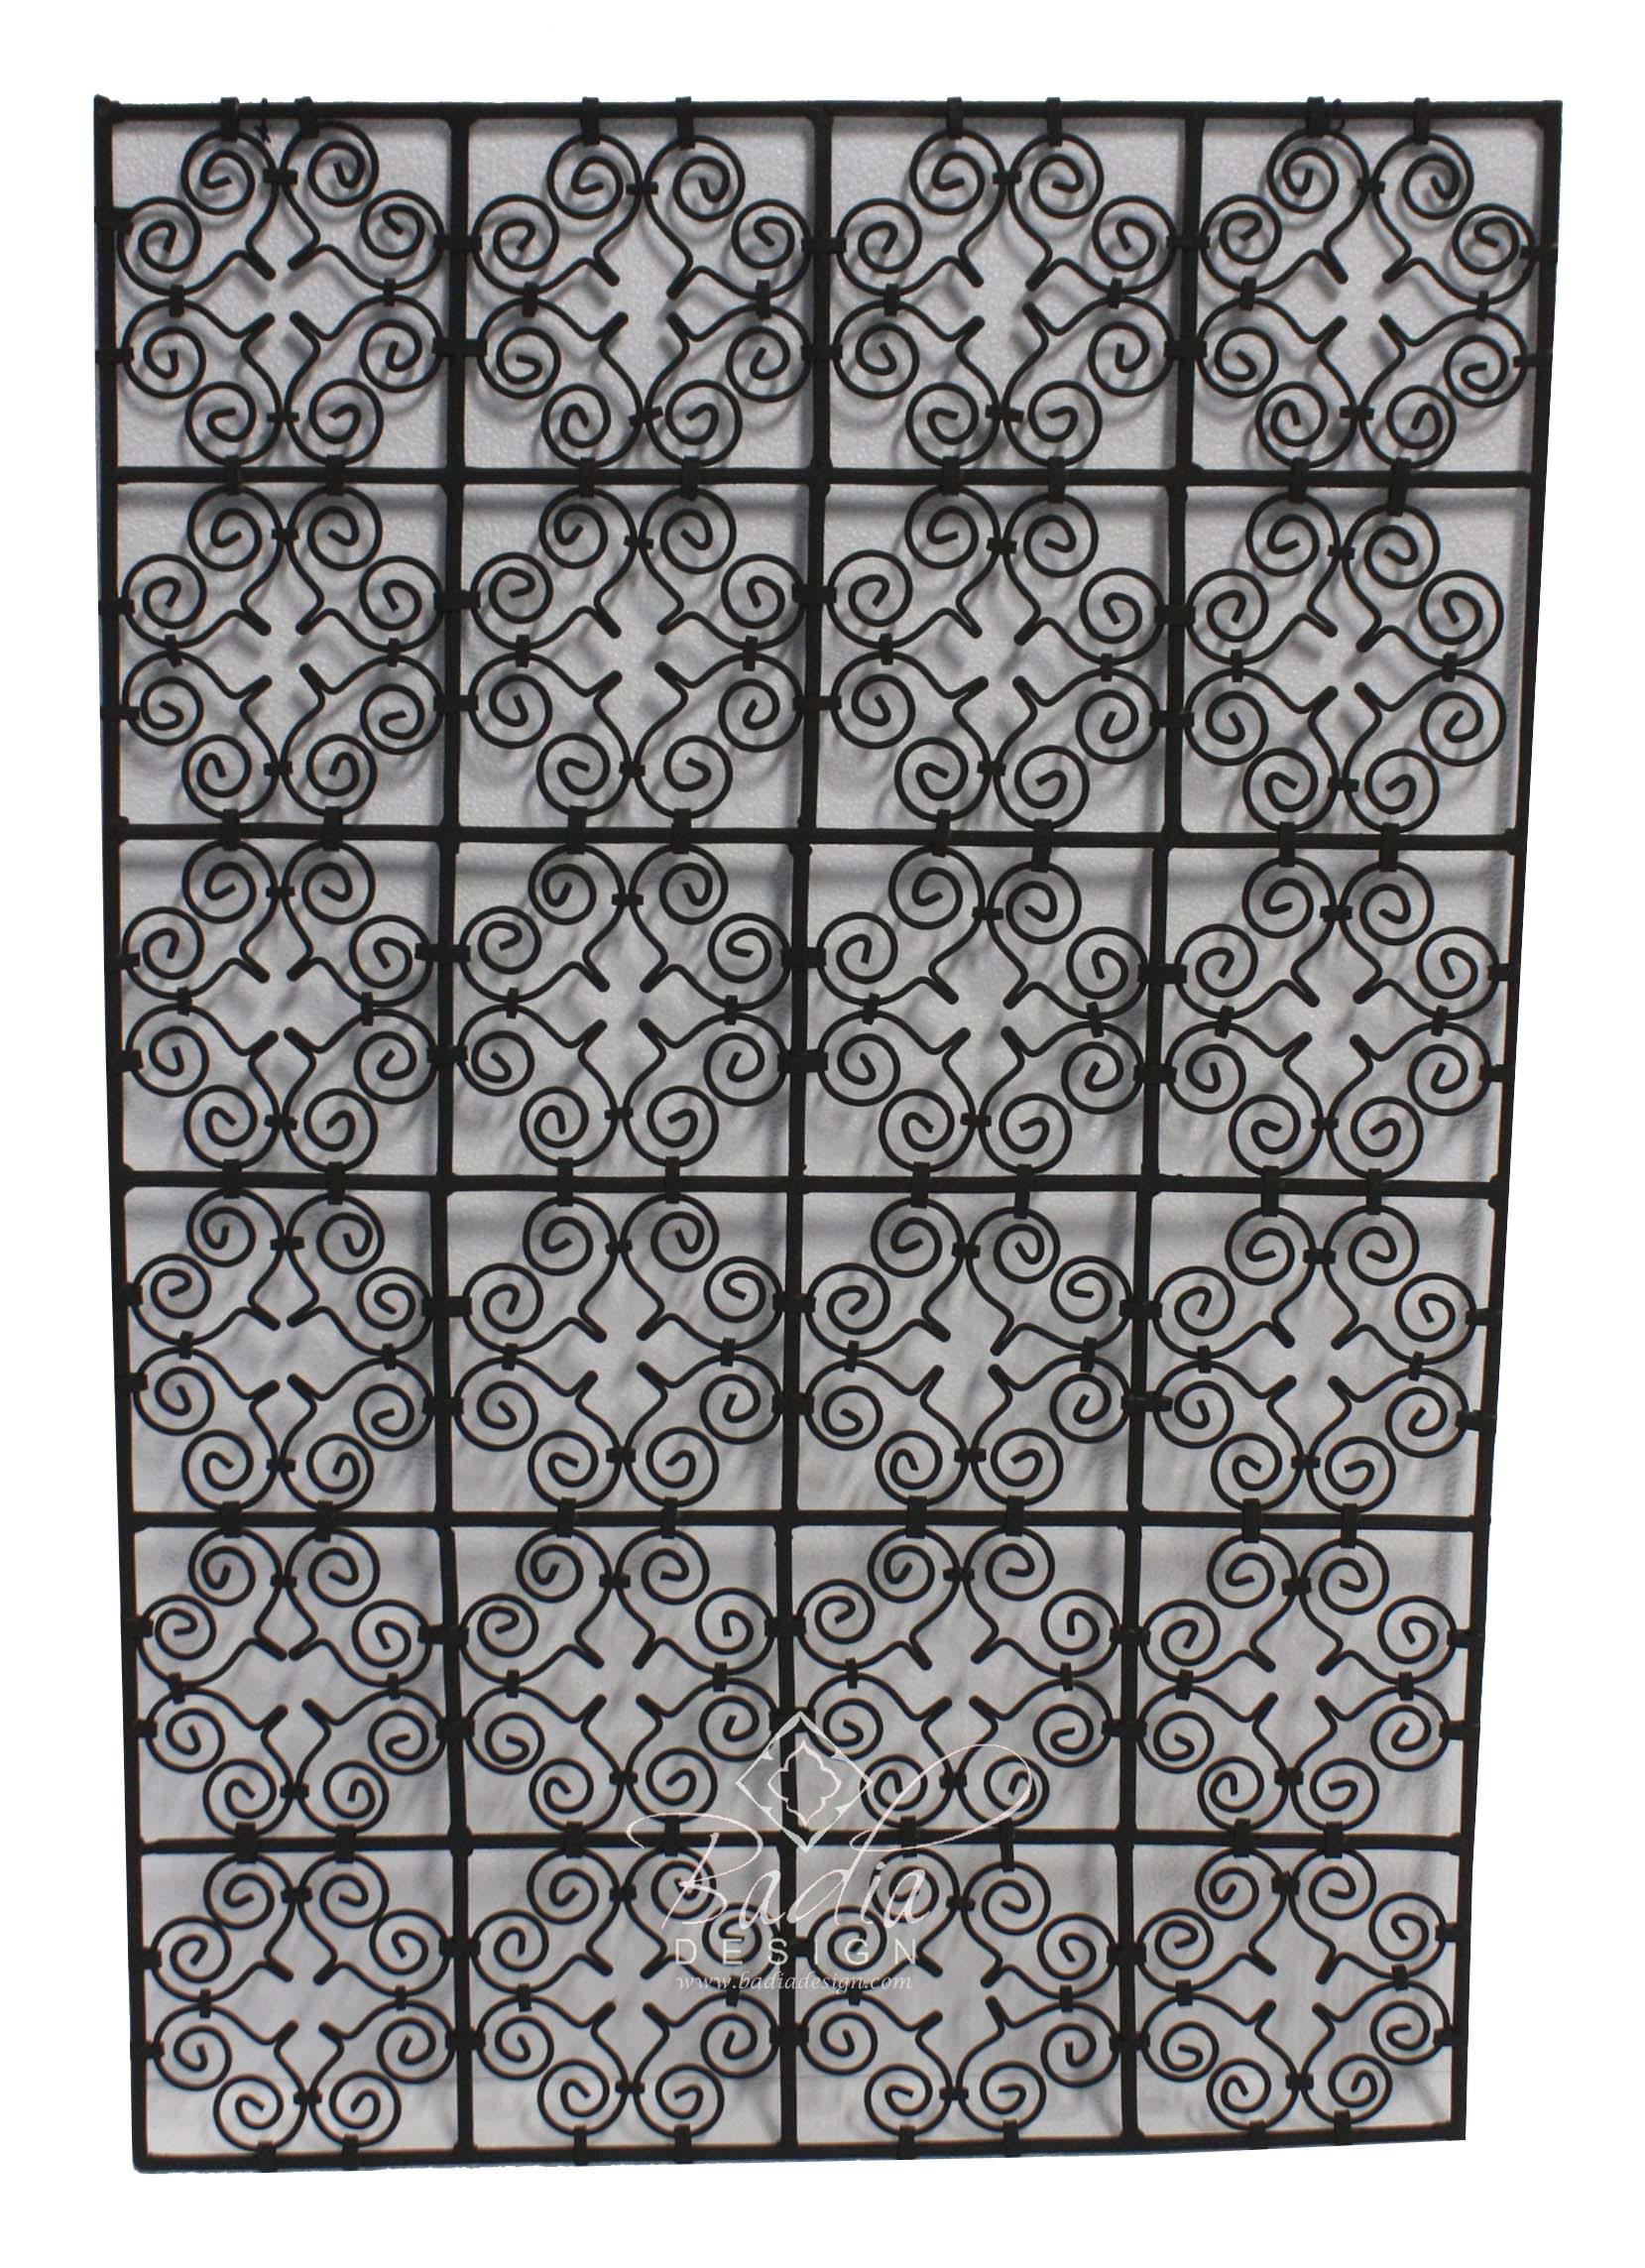 moroccan-rectangular-shaped-wrought-iron-panel-ip023.jpg